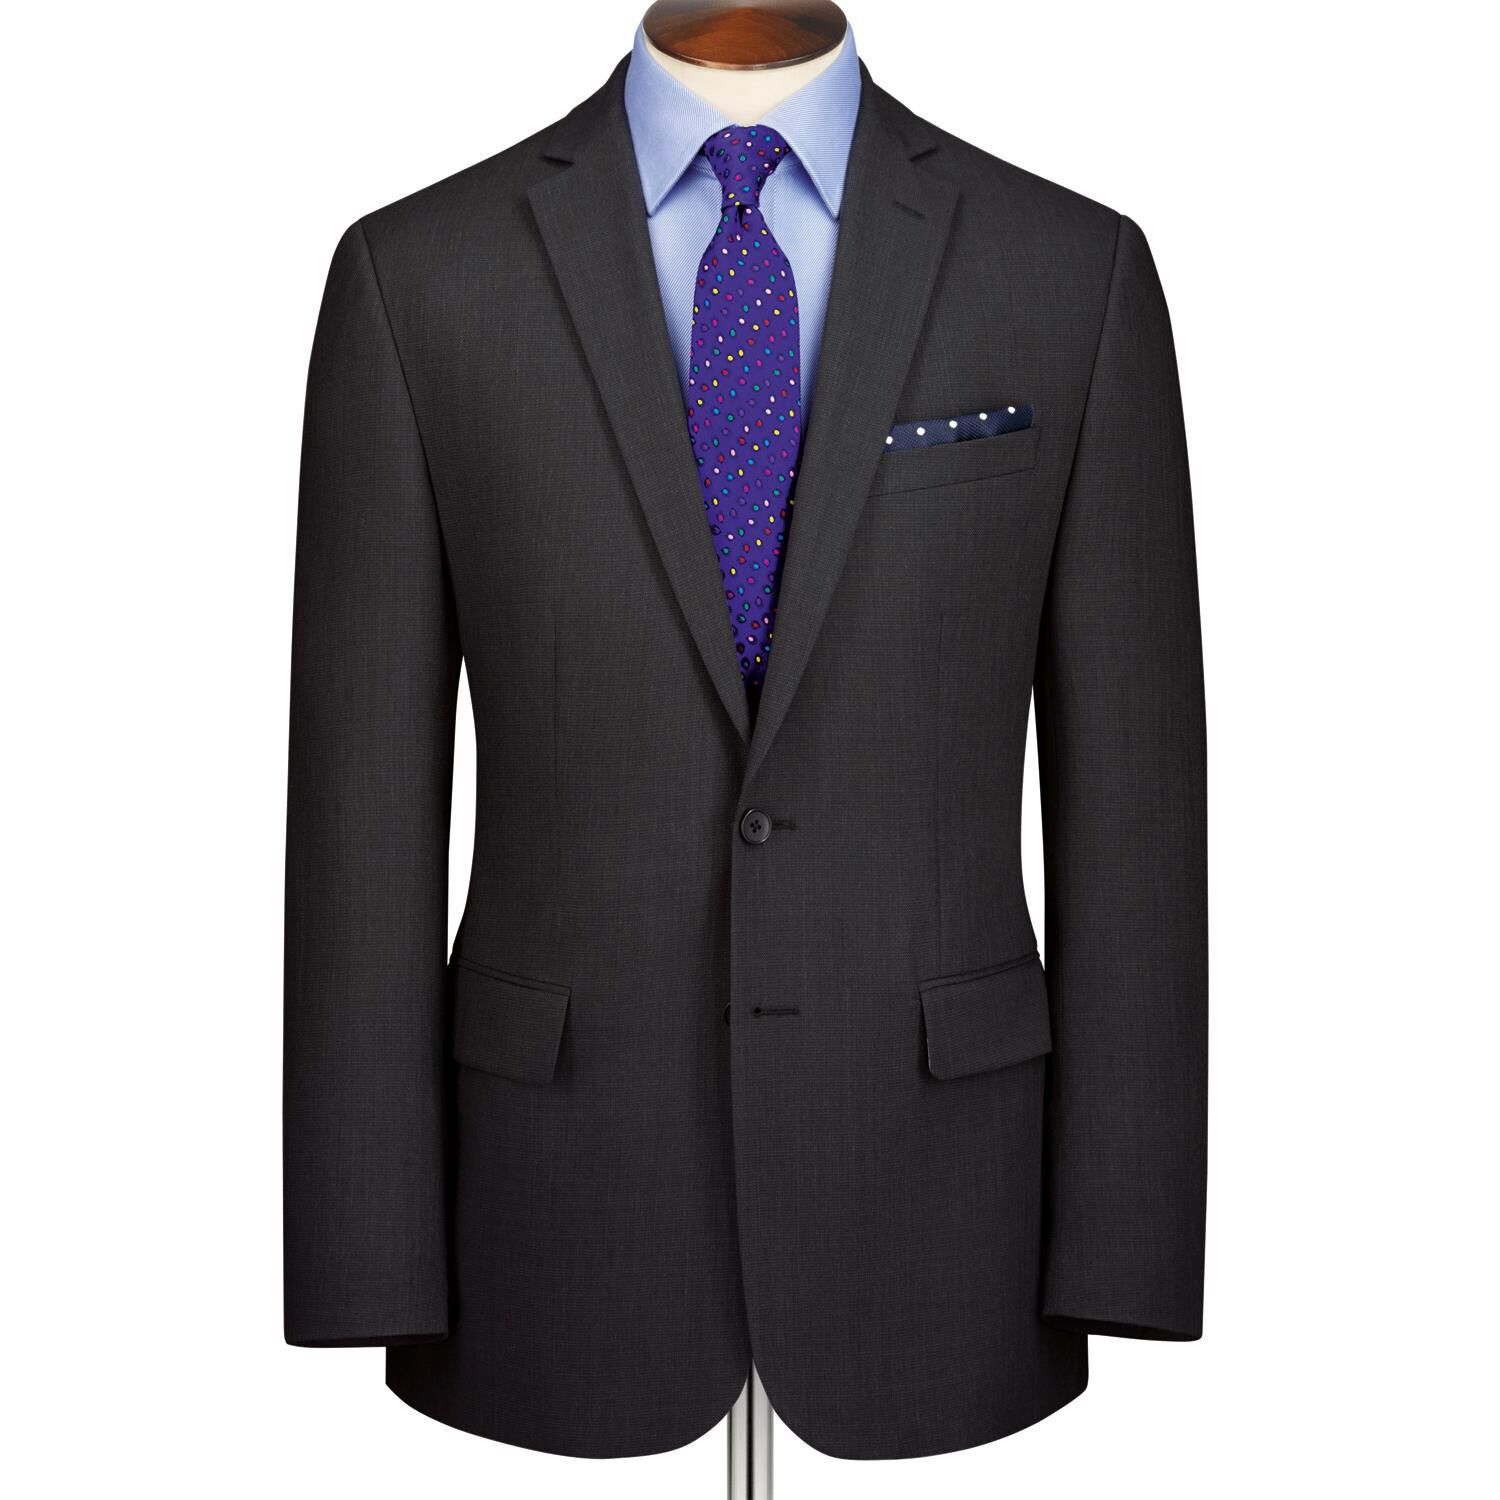 Charcoal Slim Fit Crowsfoot Business Suit Wool Jacket Size 44 Long by Charles Tyrwhitt